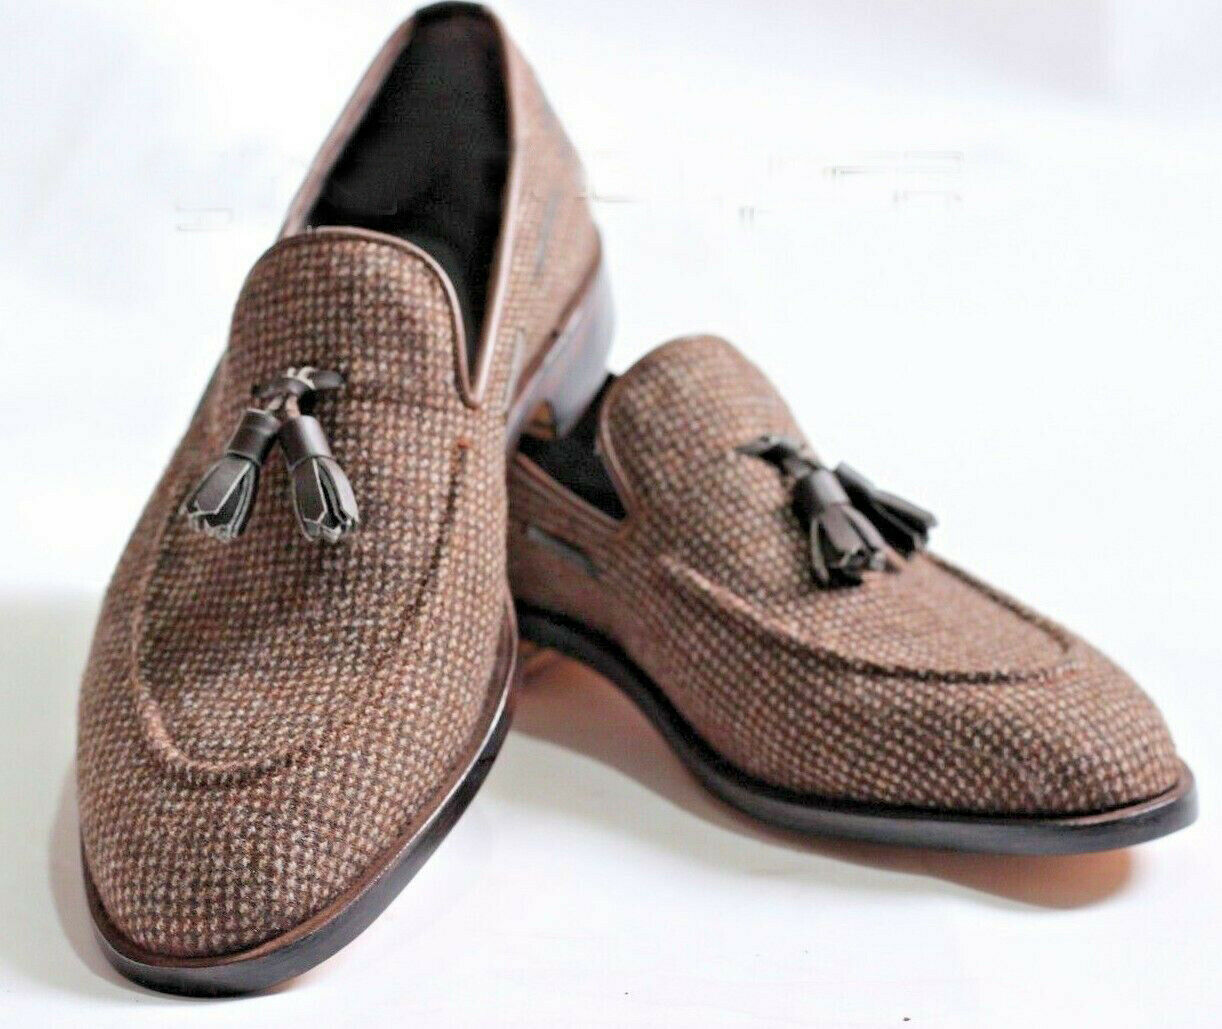 Mens Handmade scarpe scarpe scarpe Tweed Fabric Stunning Loafers & Slip On Tassels Formal stivali 1d0eea